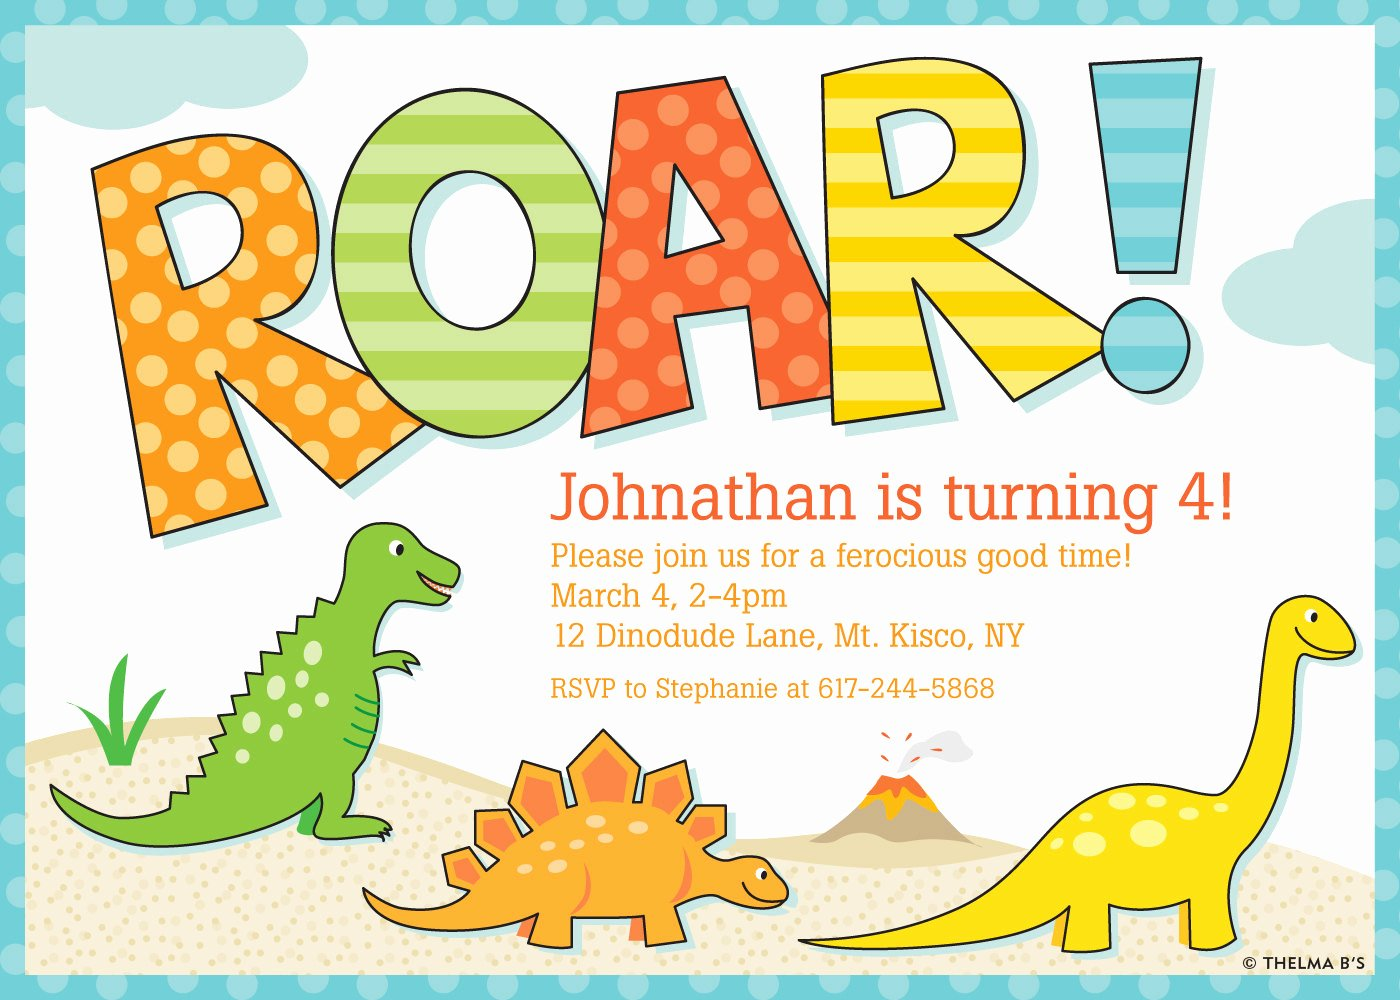 Dinosaur Birthday Party Invitations Inspirational Dinosaur Invitation Dinosaur Party Invitation Dinosaur by thelmabs